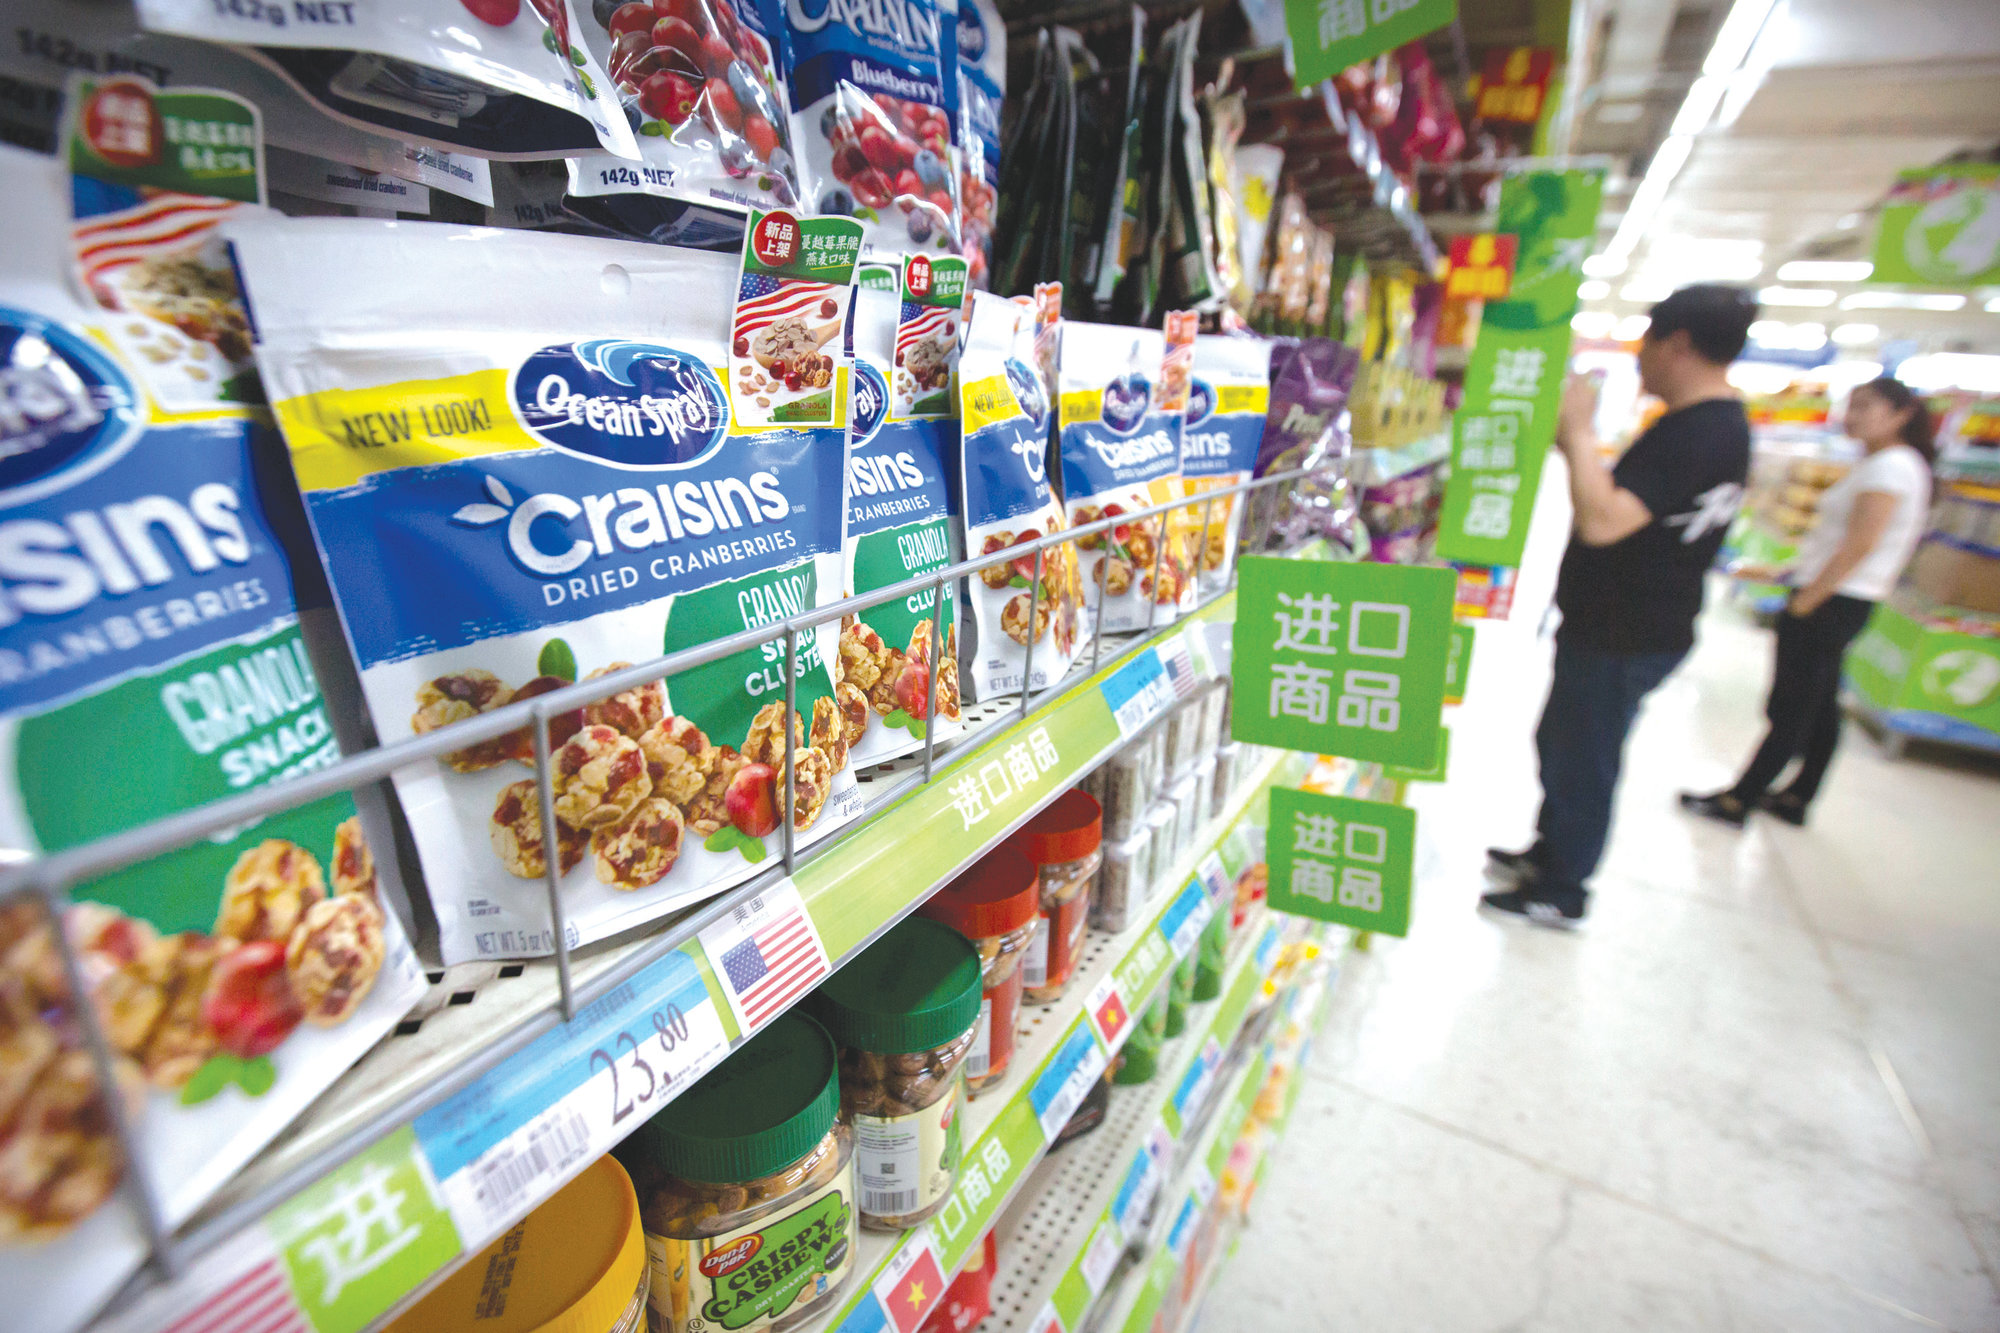 Customers shop near dried cranberry products from the United States at a supermarket in Beijing on Tuesday. Sending Wall Street into a slide, China announced higher tariffs Monday on $60 billion worth of American goods in retaliation for President Donald Trump's latest penalties on Chinese products.